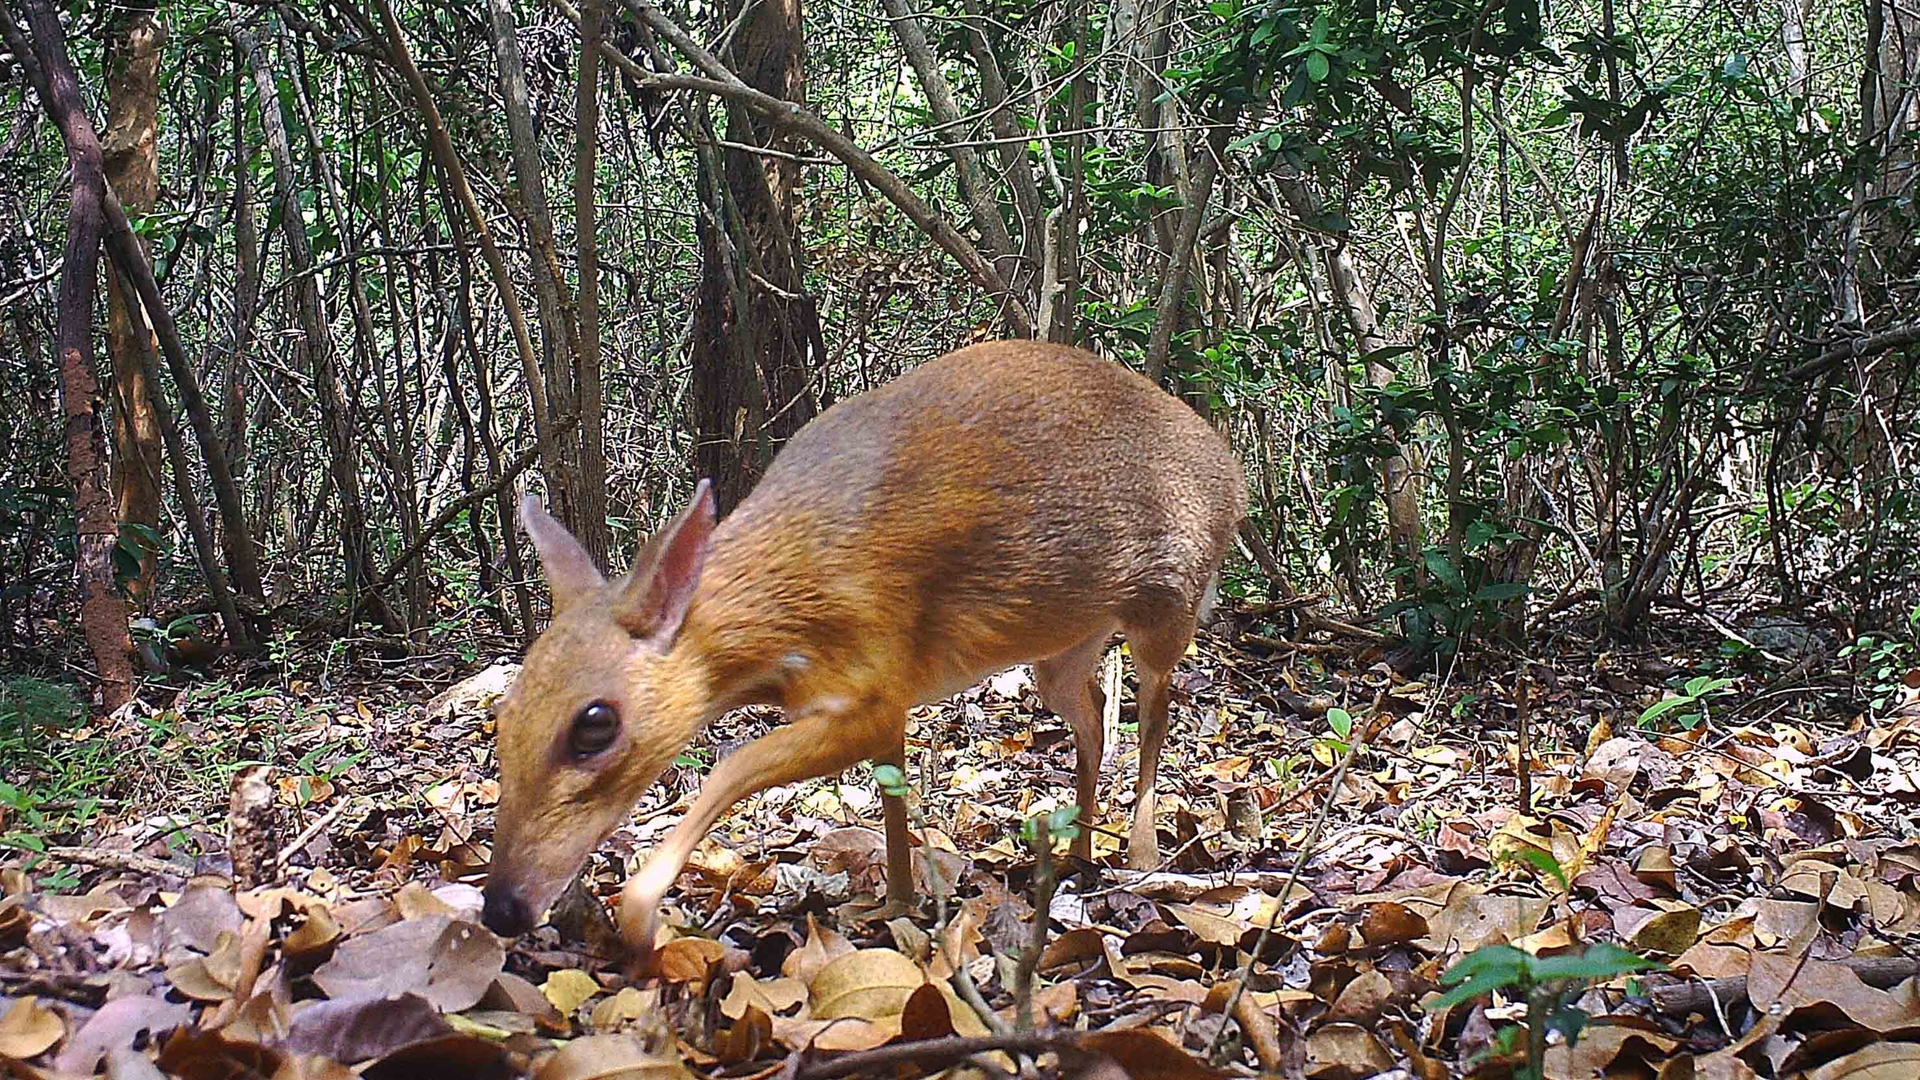 A camera trap photo of a silver-backed chevrotain, a deer-like creature that was thought lost to science but has been discovered living in the wild in Vietnam. (Credit: Southern Institute of Ecology/Global Wildlife Consesrvation/Leibniz Institute/NCNP)